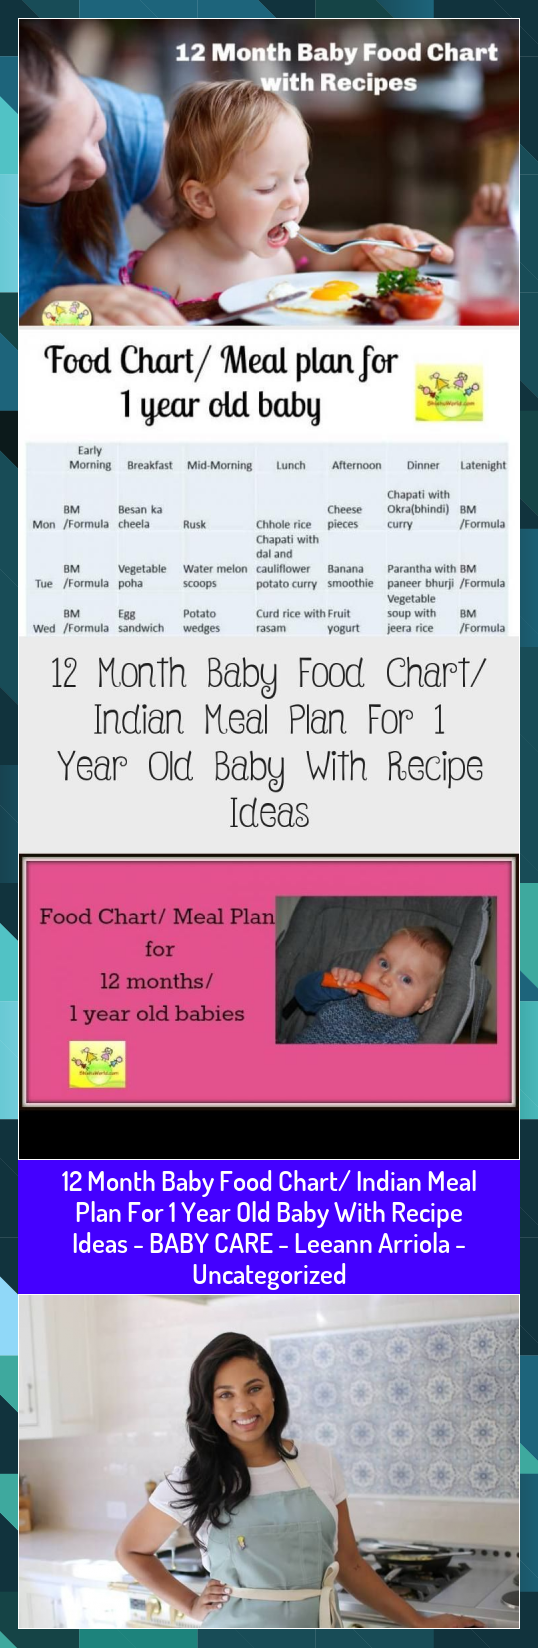 12 Month Baby Food Chart/ Indian Meal Plan For 1 Year Old Baby With Recipe Ideas - BABY CARE - Leeann Arriola - Uncategorized #Arriola #baby #Care #chart #Food #Ideas #Indian #Leeann #Meal #Month #Plan #Recipe #Year